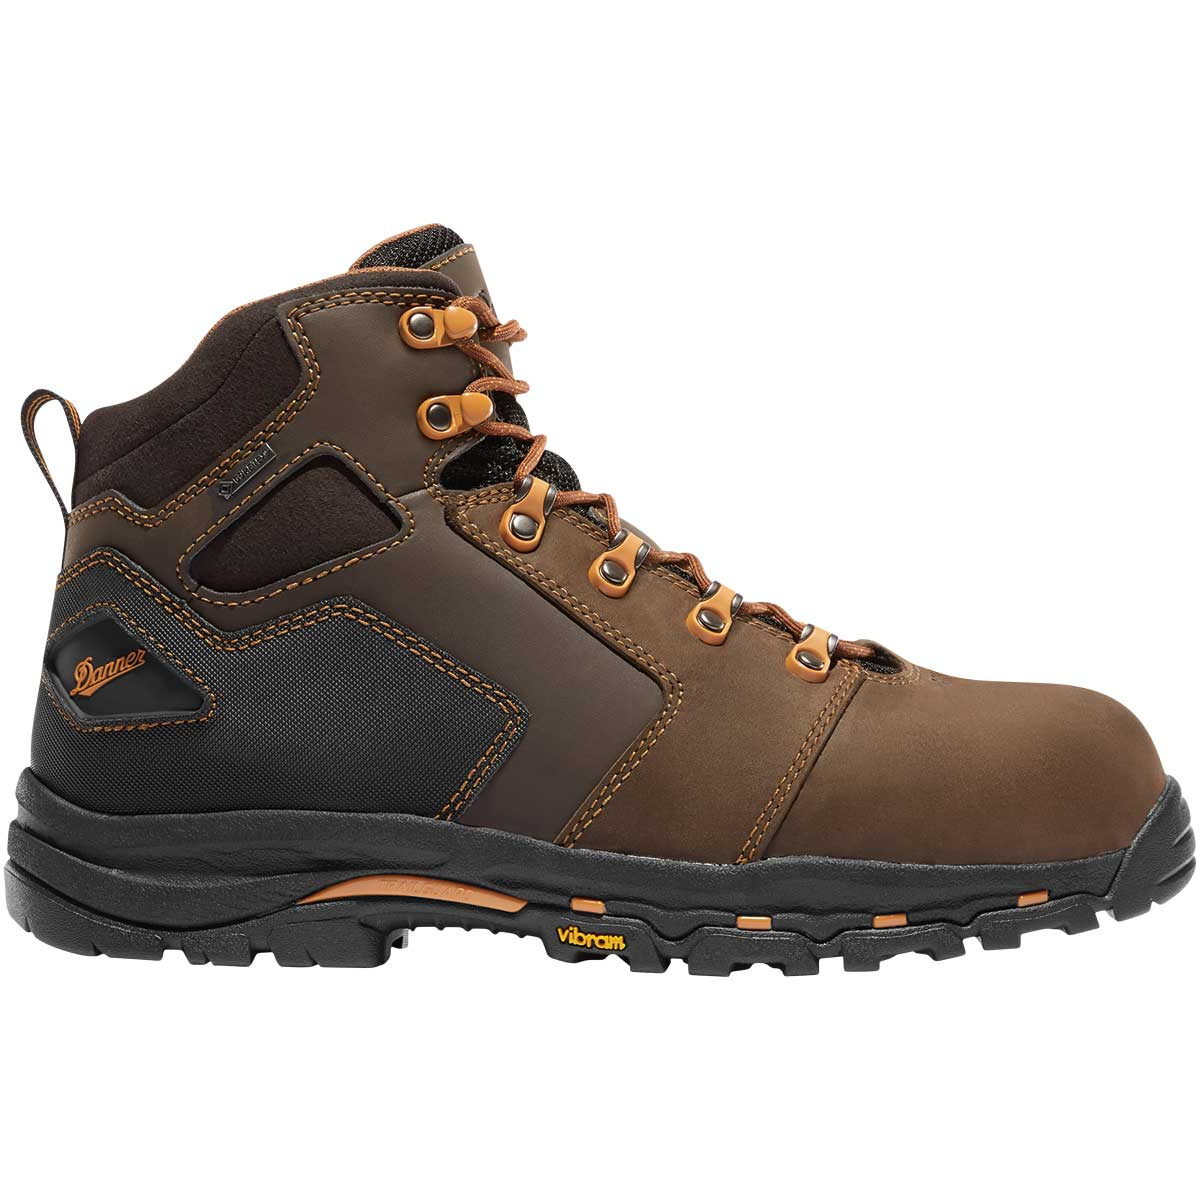 "Danner Vicious 4.5"" Safety Toe Boots"